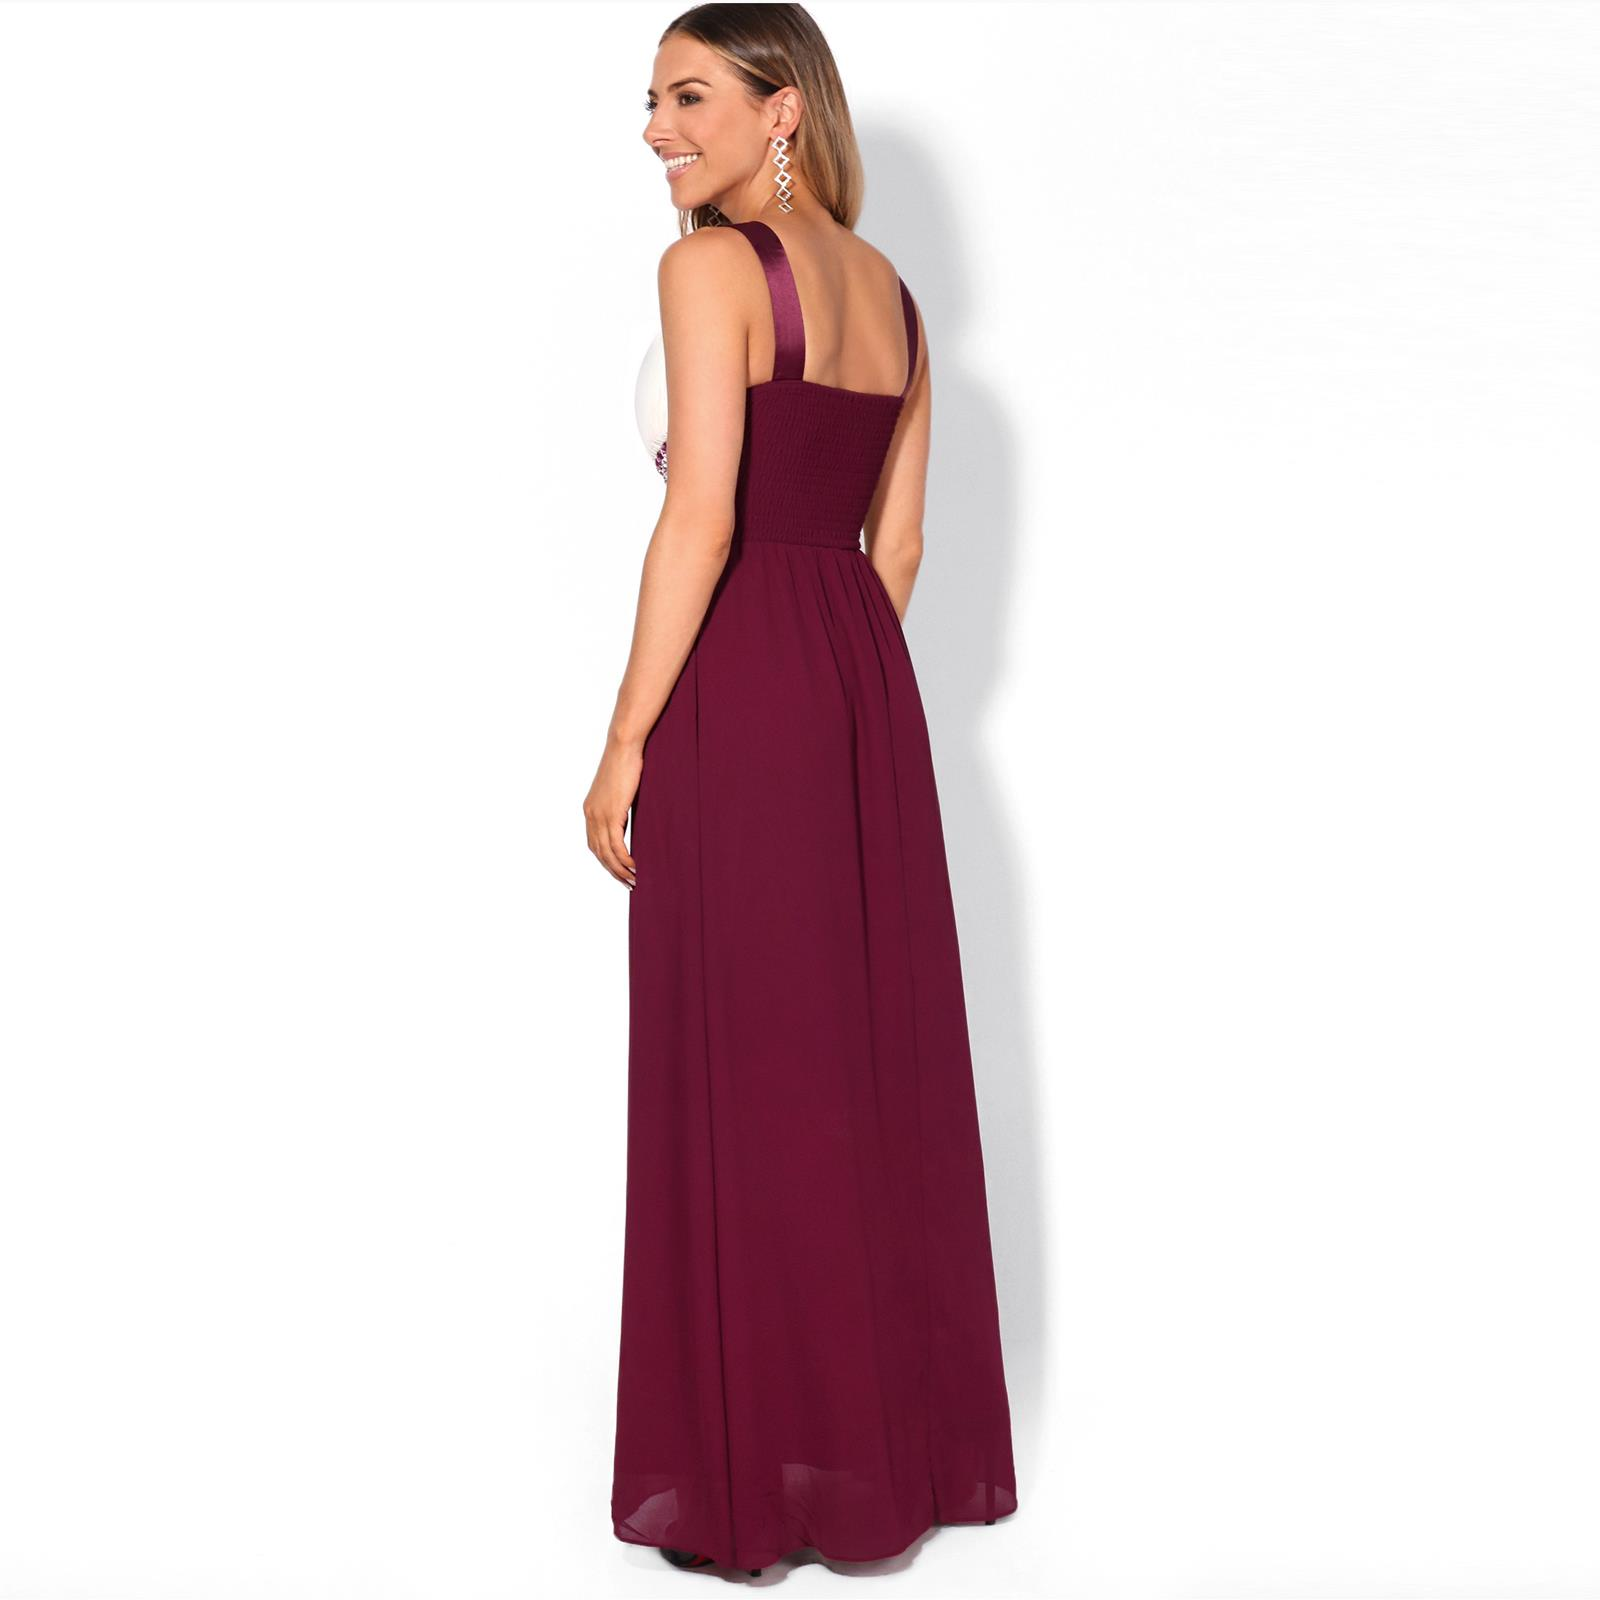 Women-Formal-Diamante-Wedding-Cocktail-Dress-Long-Ball-Gown-Prom-Maxi-Party-8-18 thumbnail 31